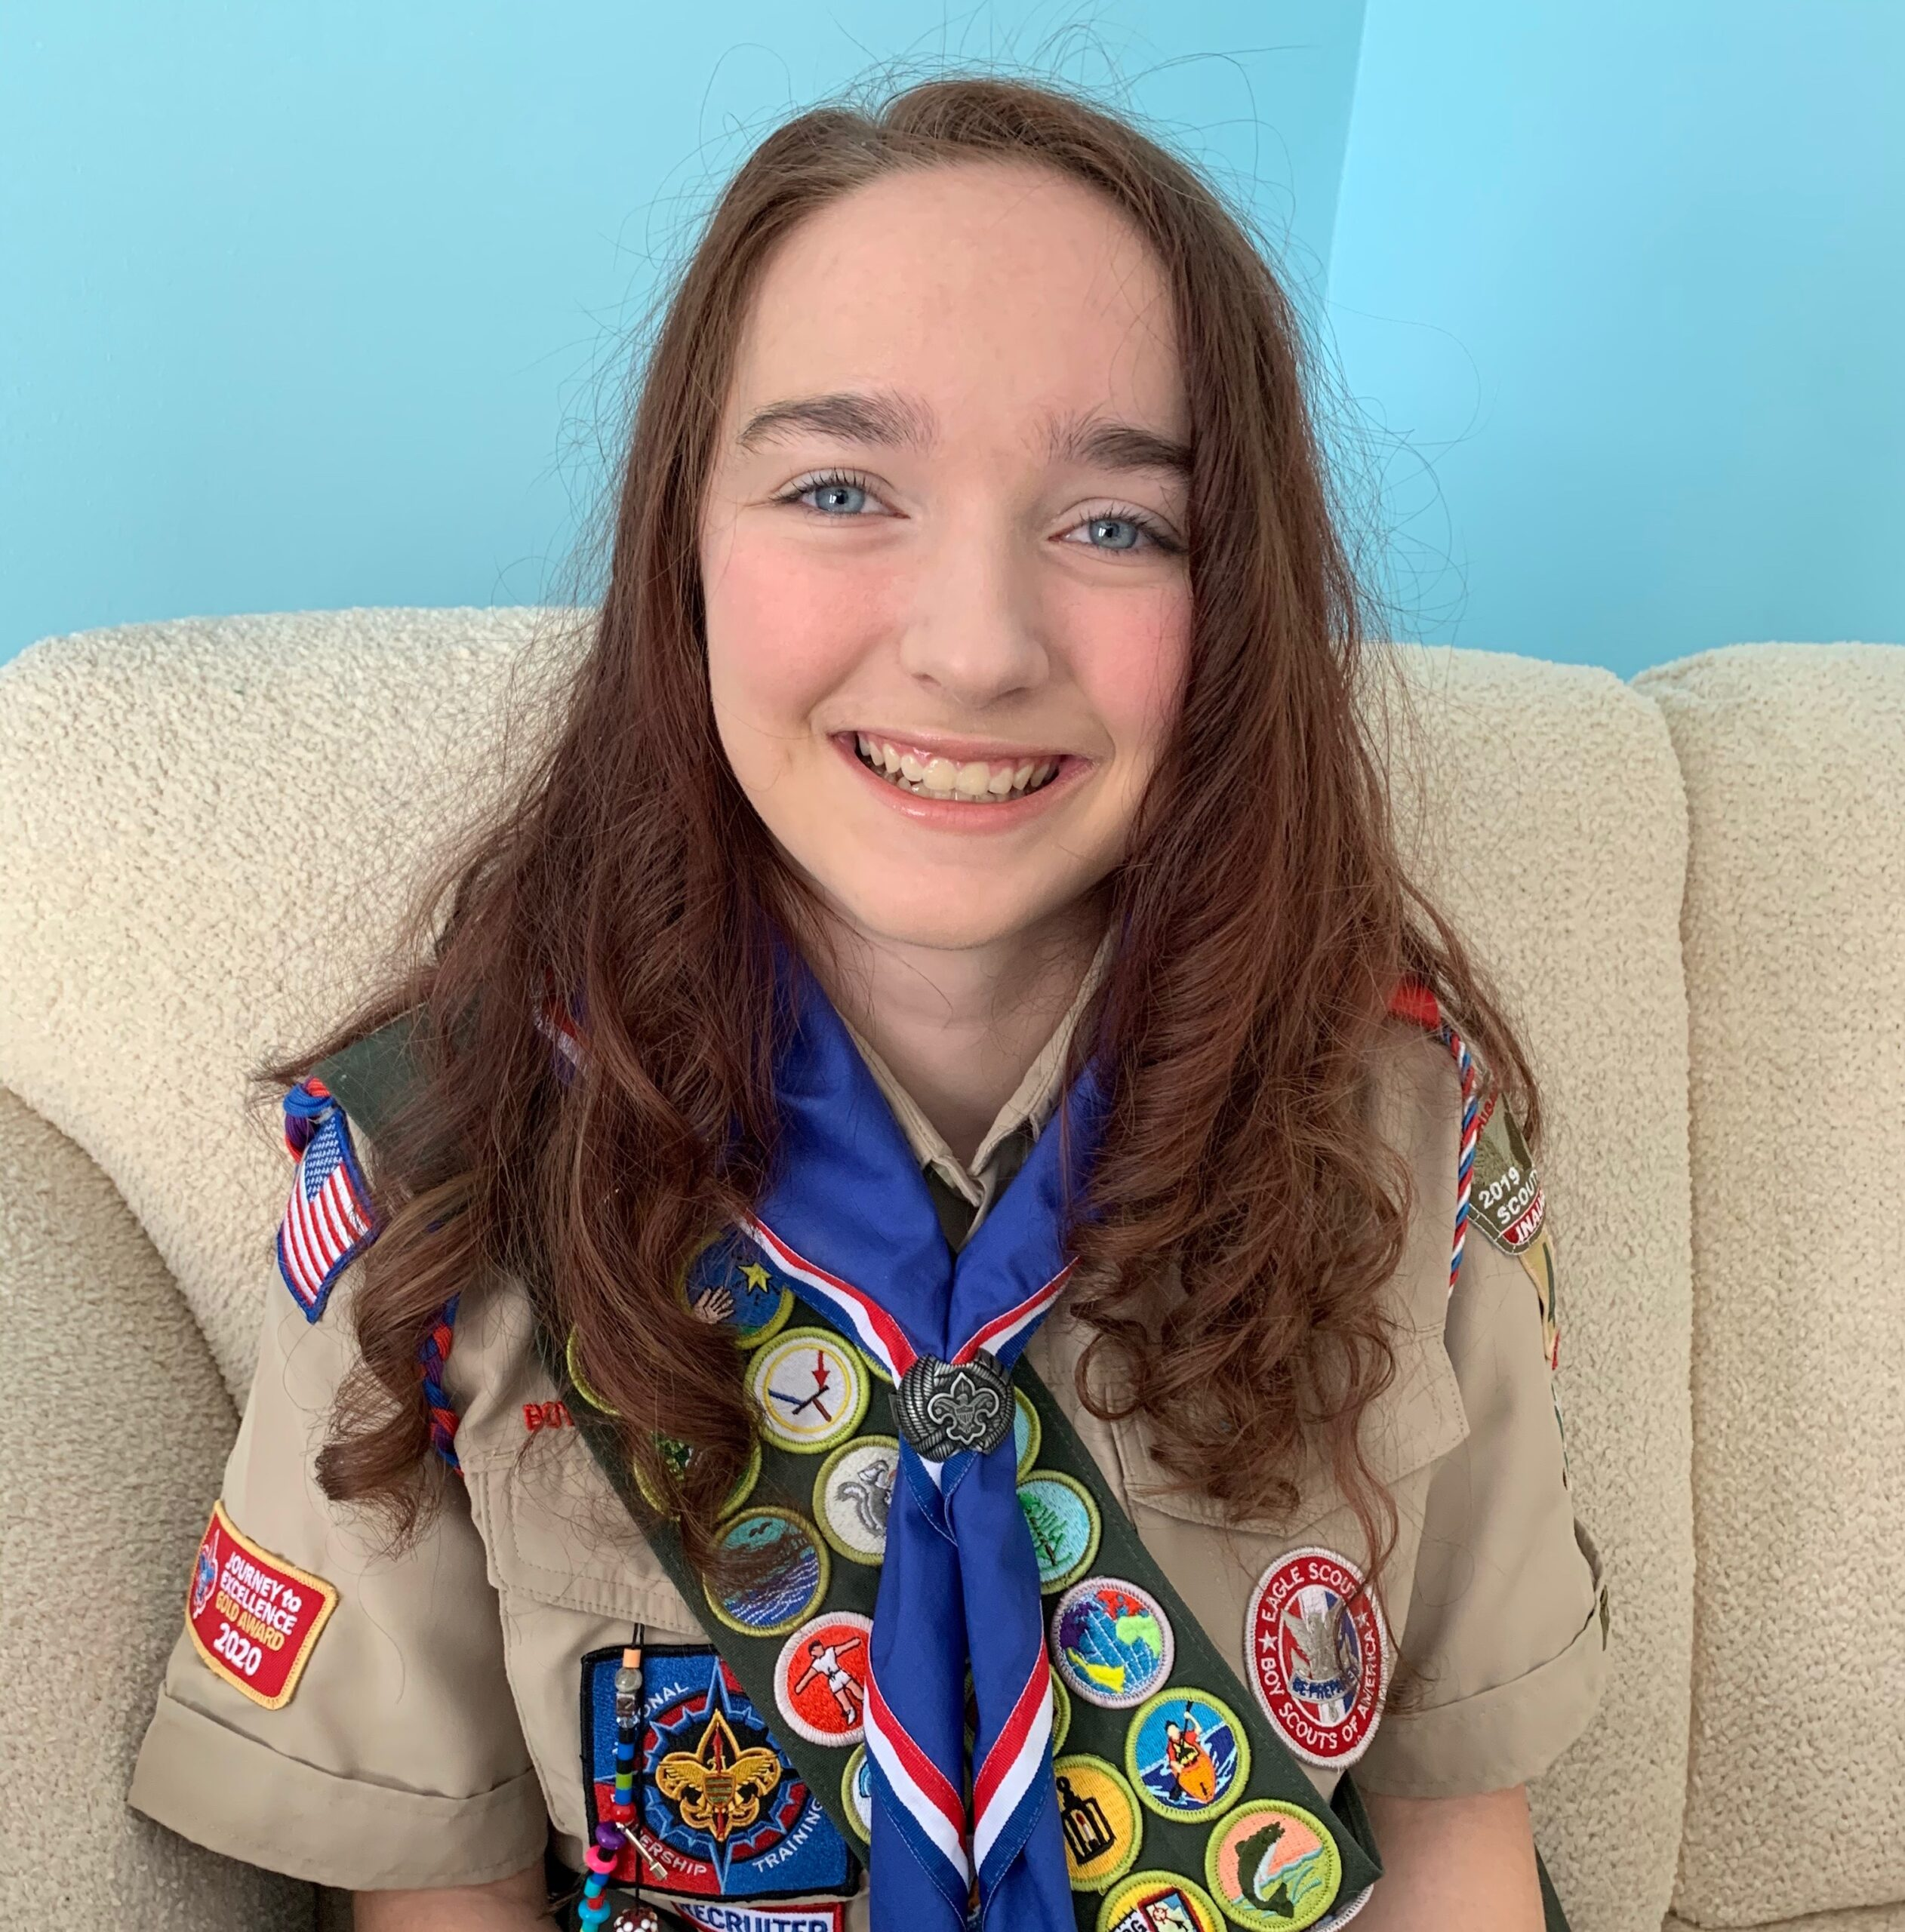 Gabby is an Eagle Scout.